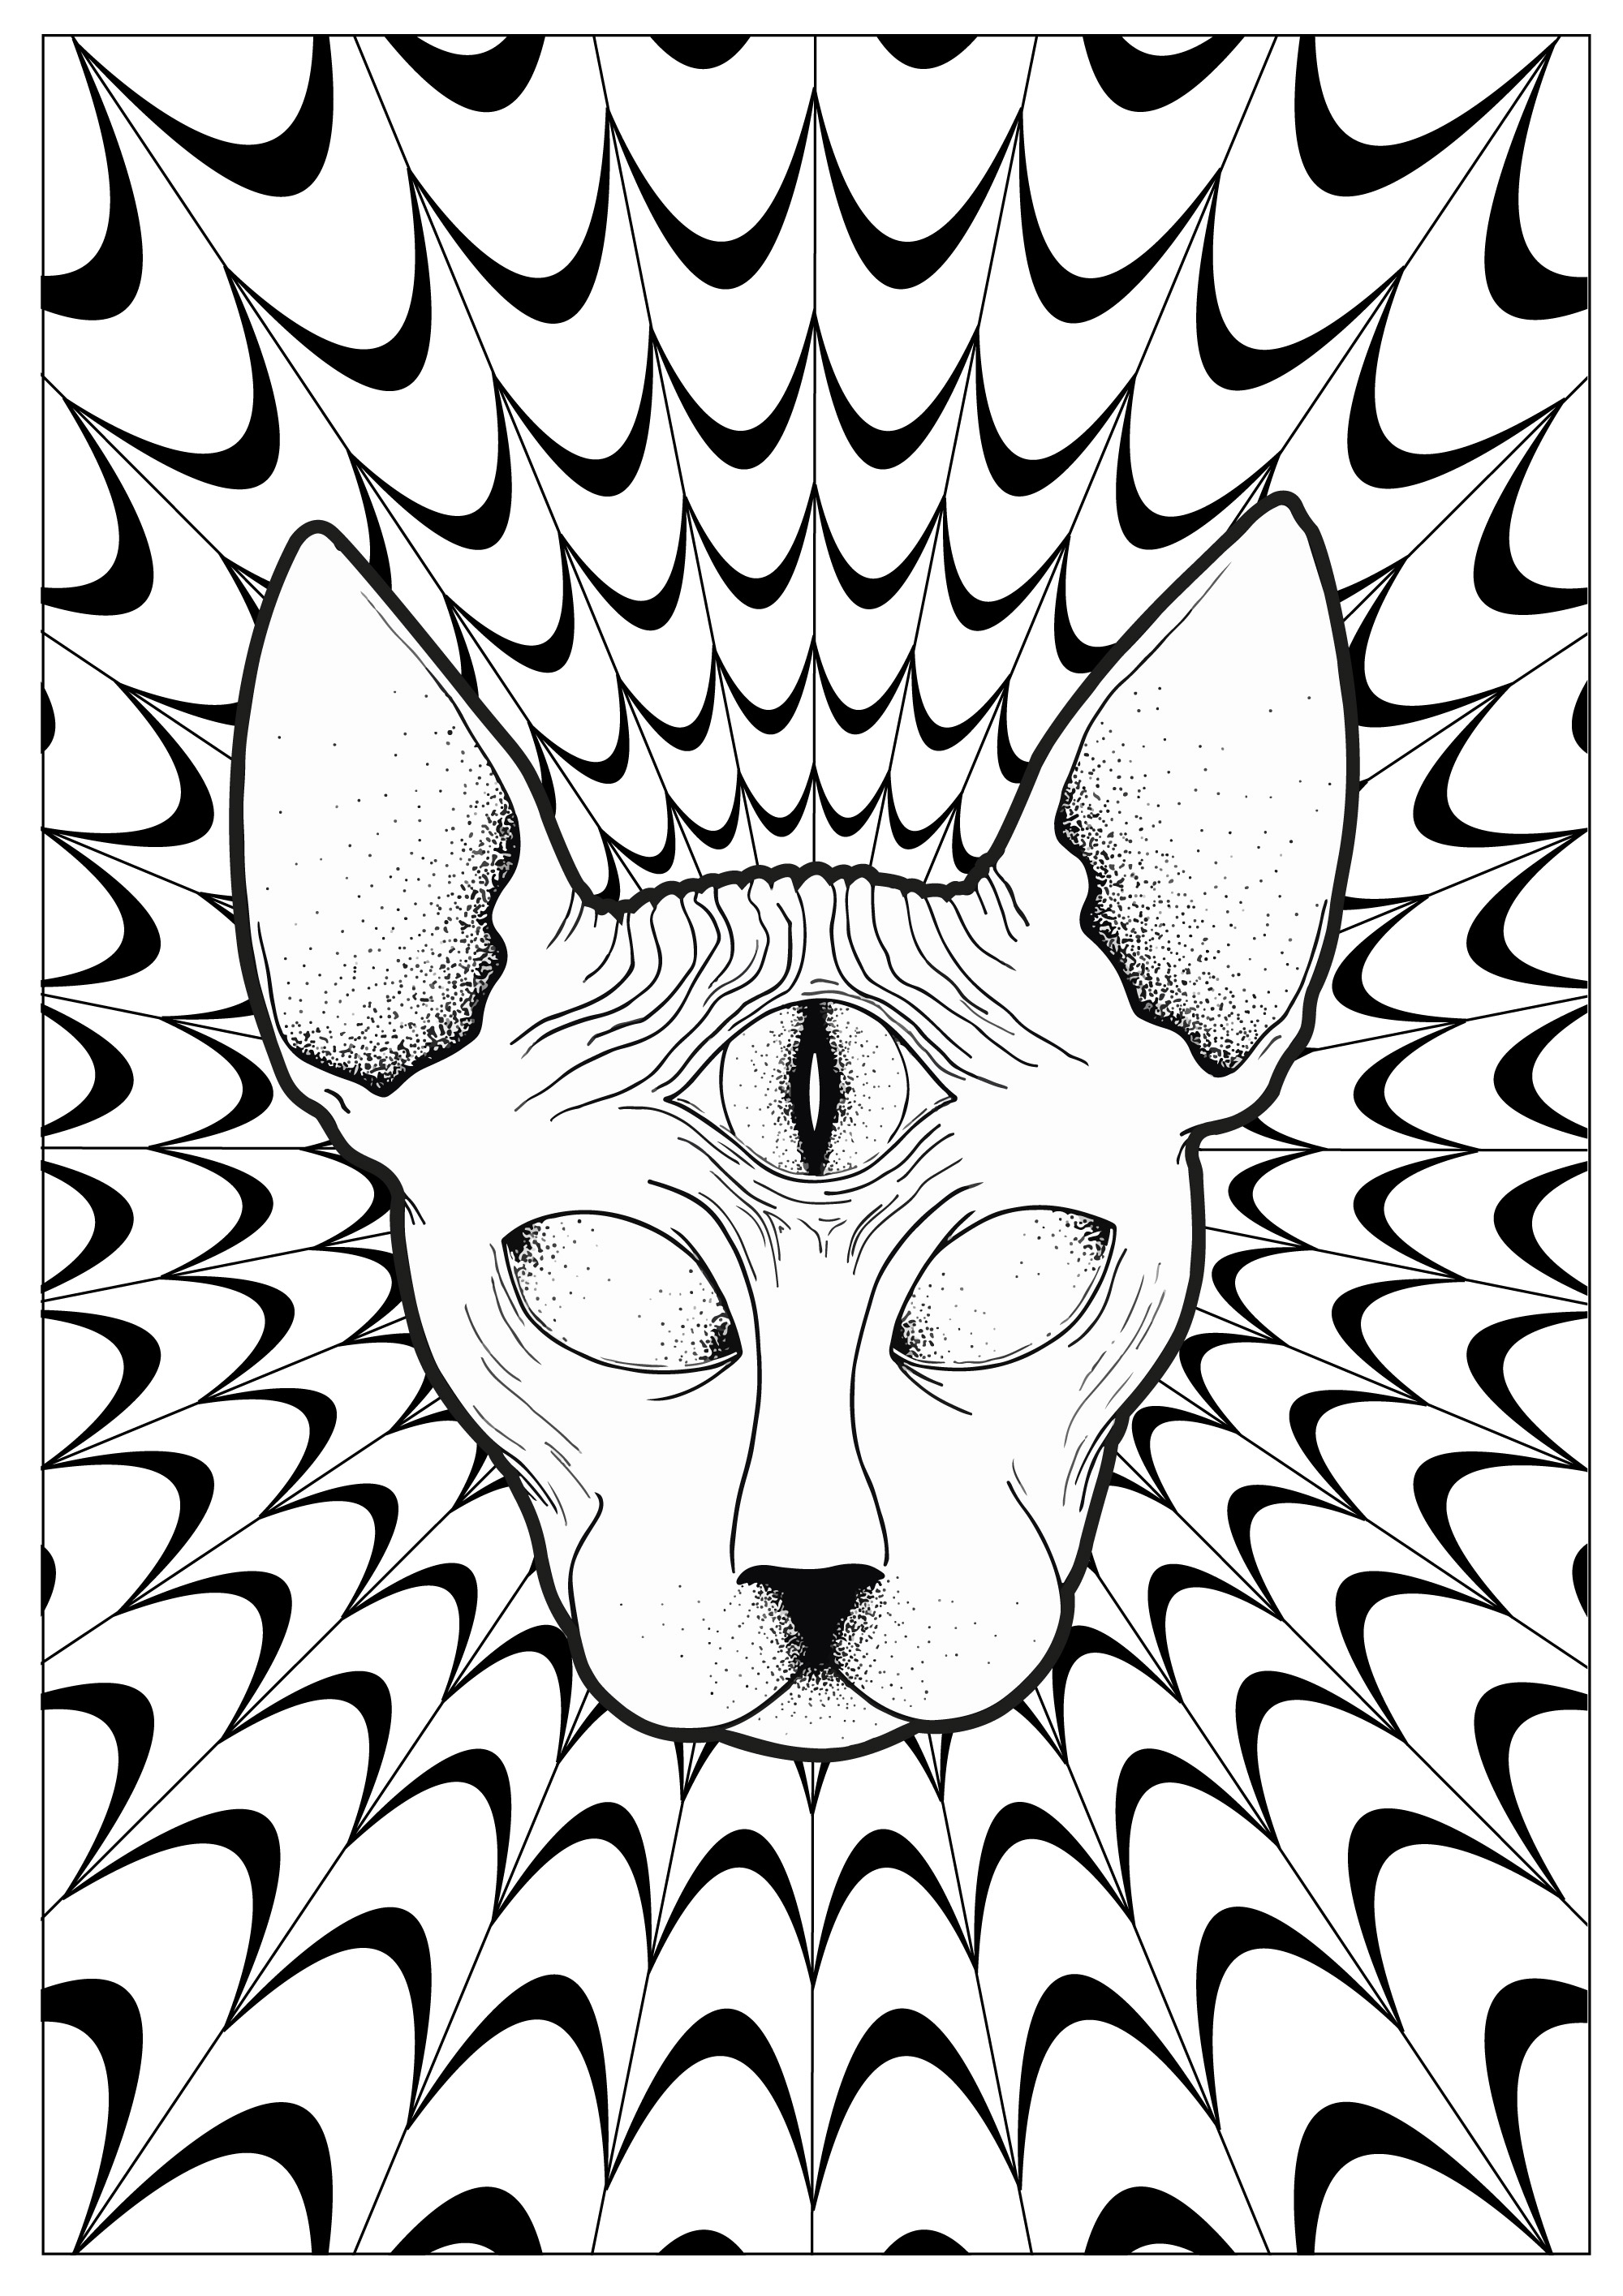 Psychedelic - Coloring pages for adults | JustColor